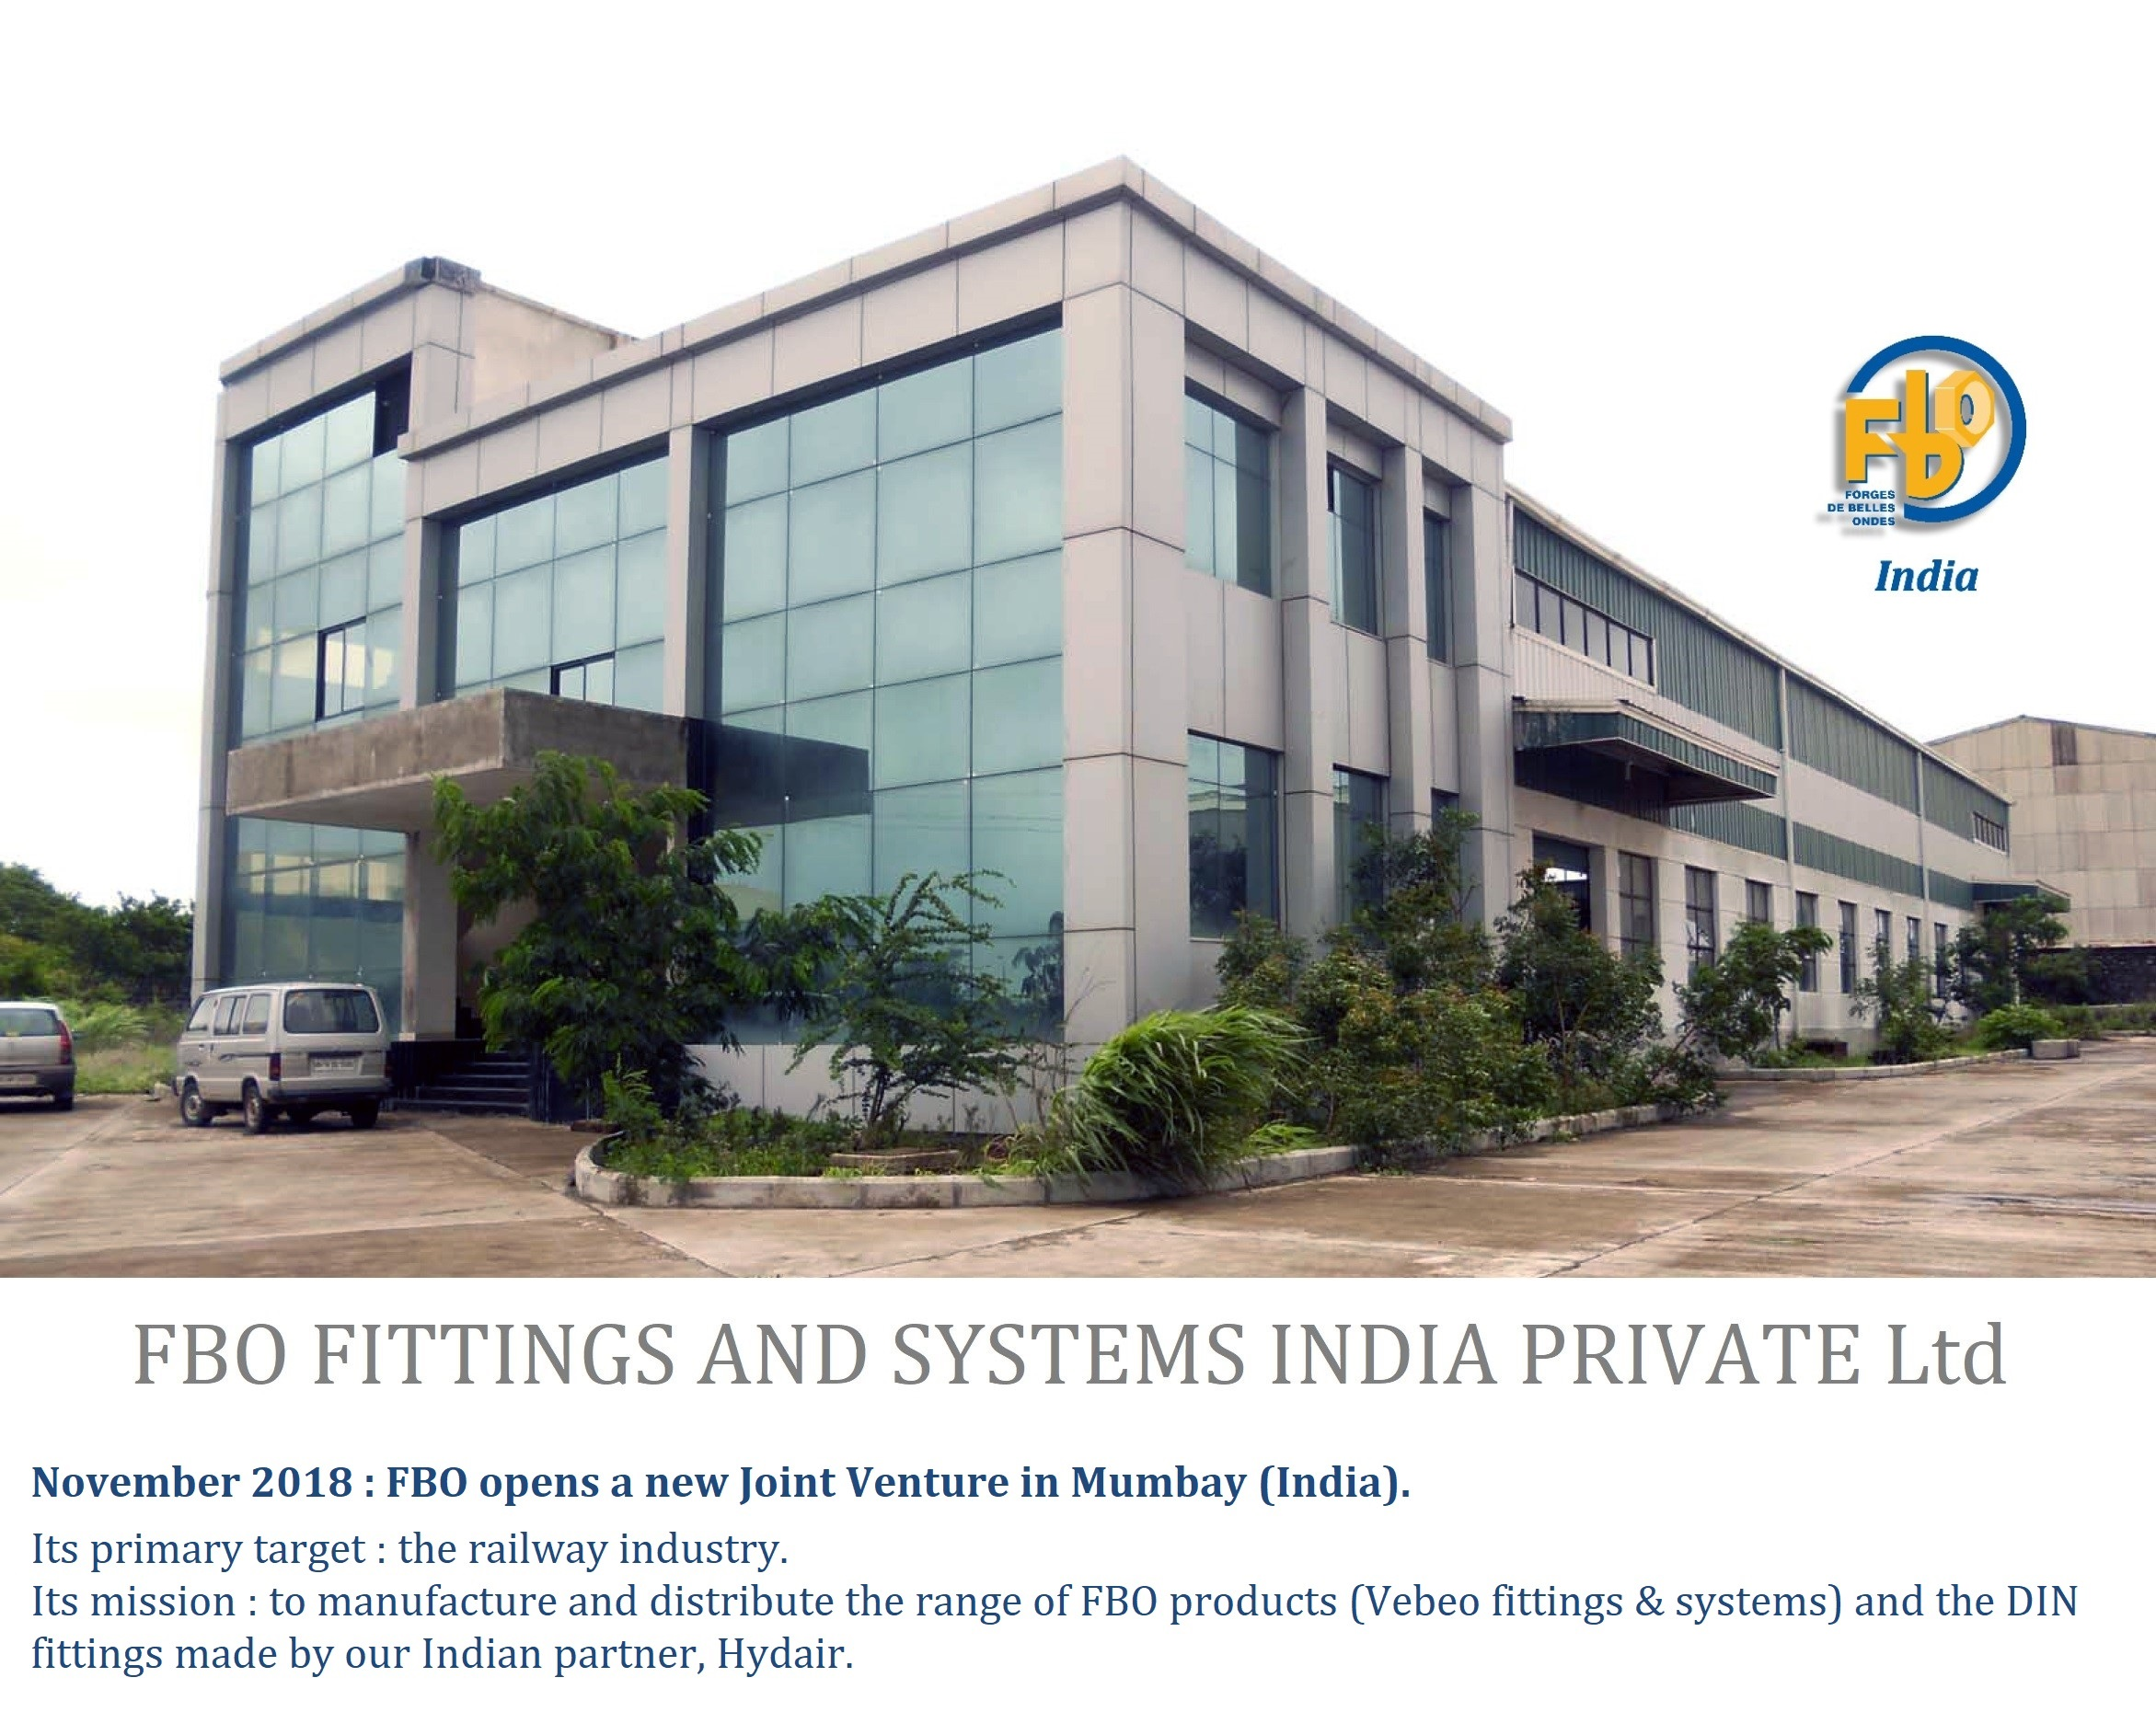 FBO FITTINGS AND SYSTEMS INDIA Private Limited